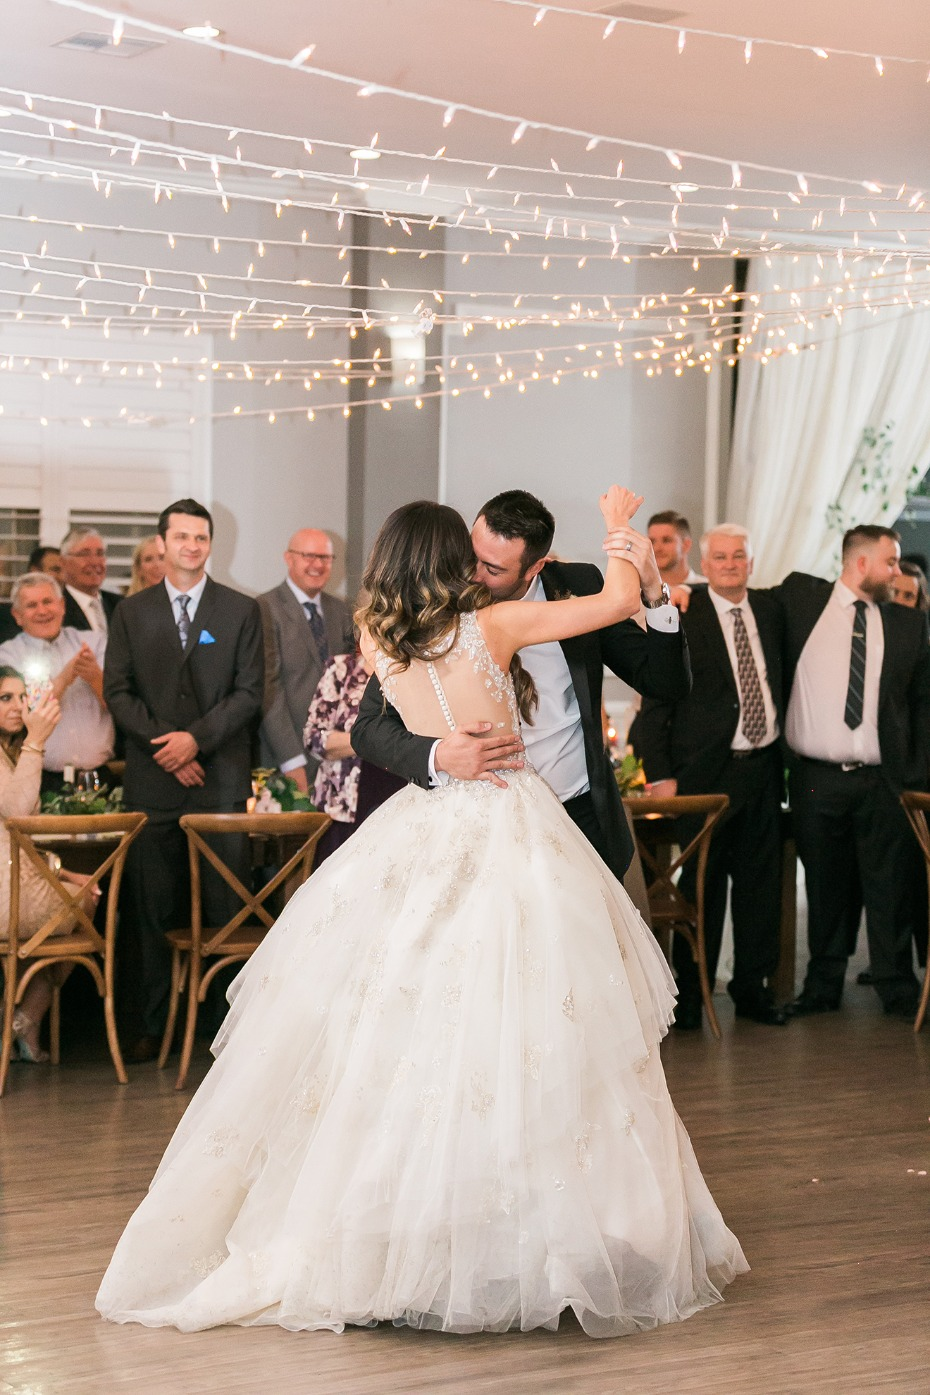 Beautiful first dance